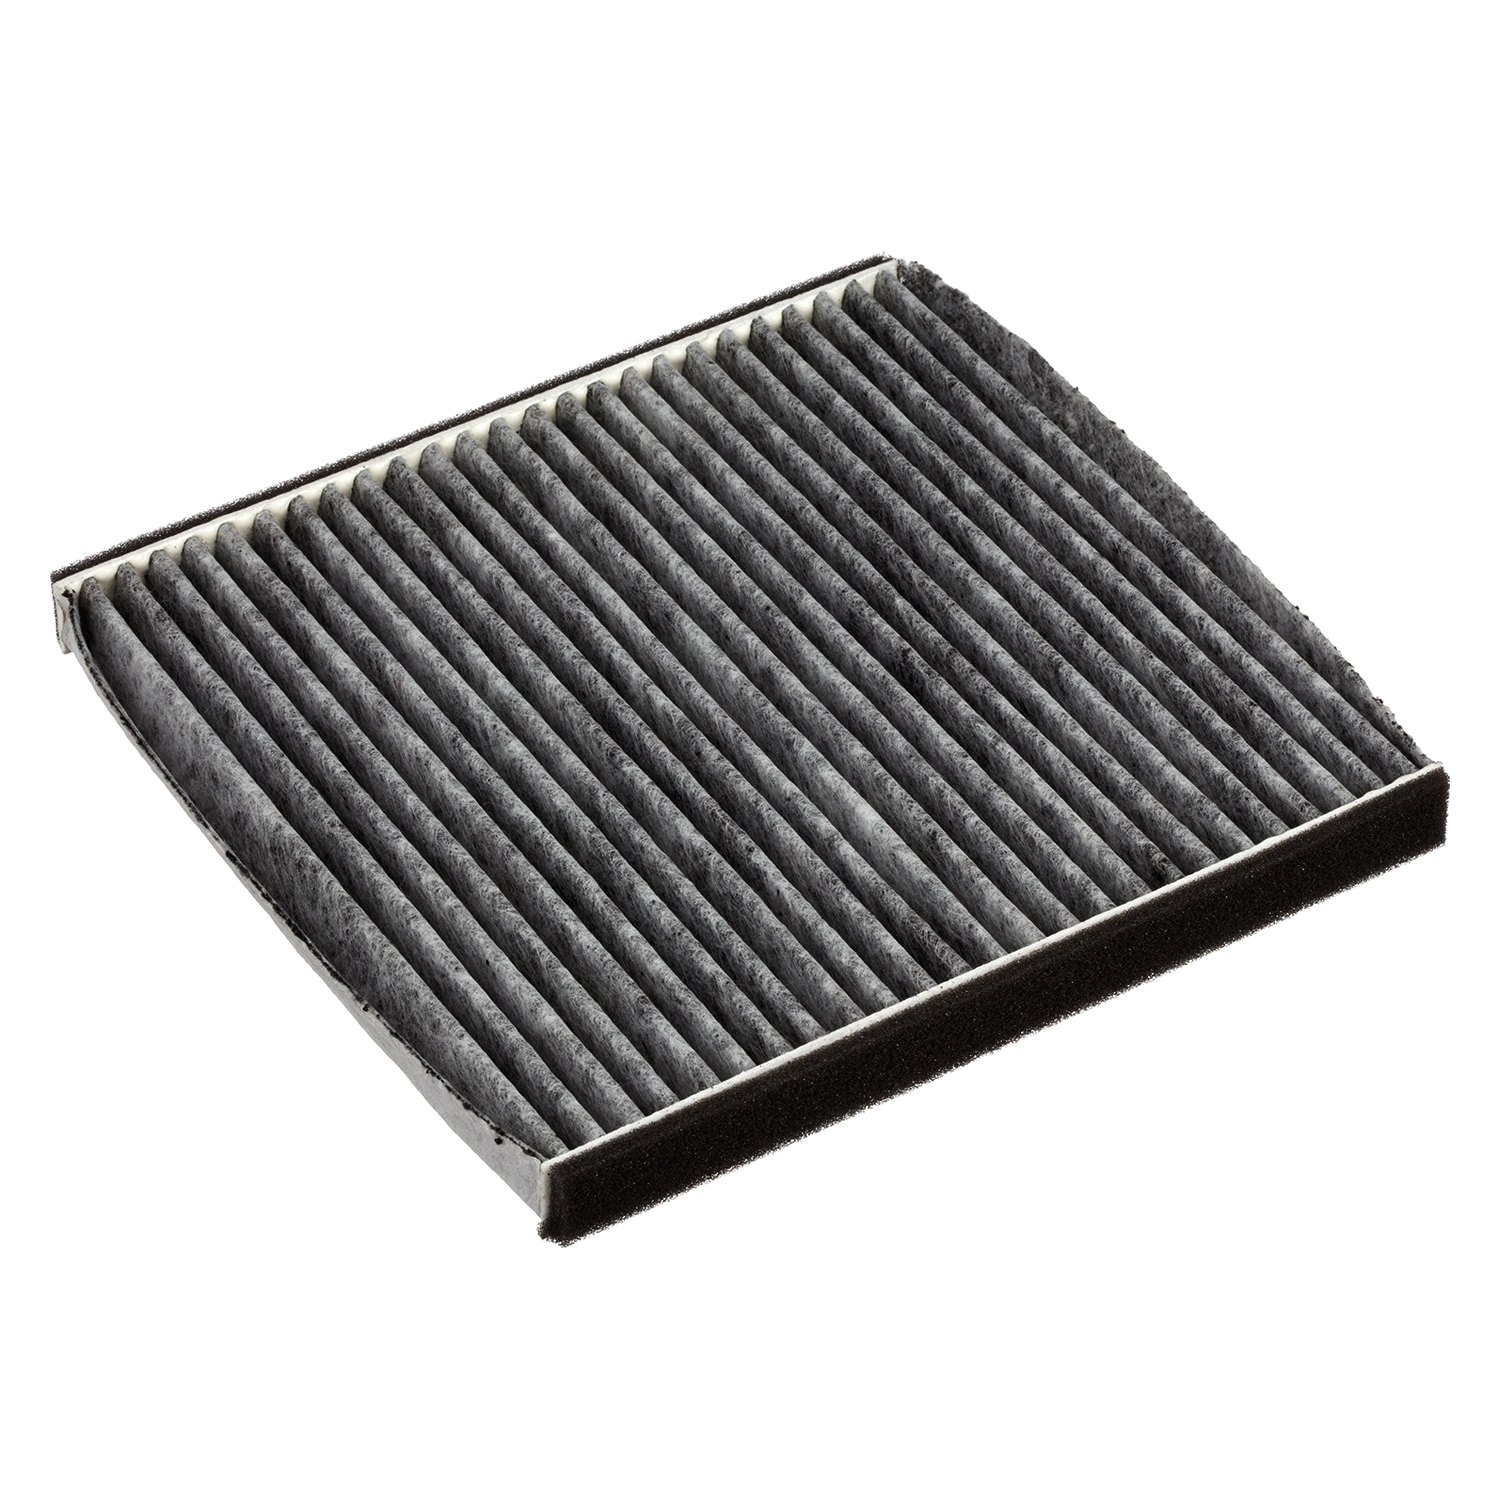 ra-3 Terrific toyota Camry 2006 Air Filter Replacement Cars Trend